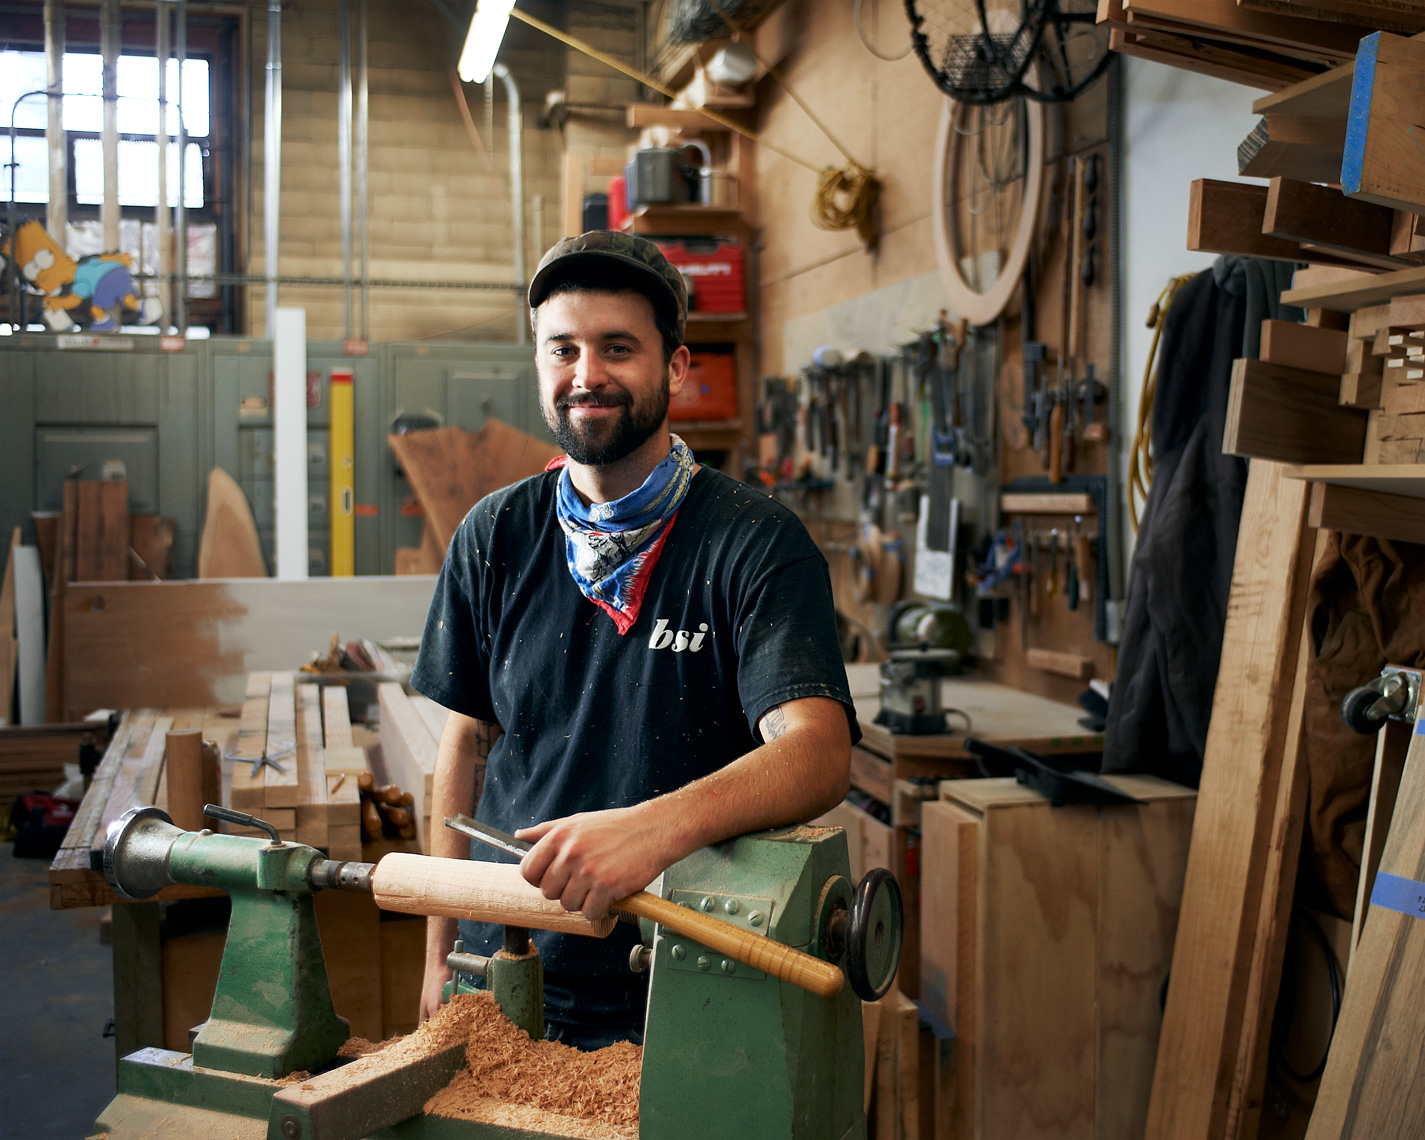 Woodworker poses among his tools for this workplace portrait